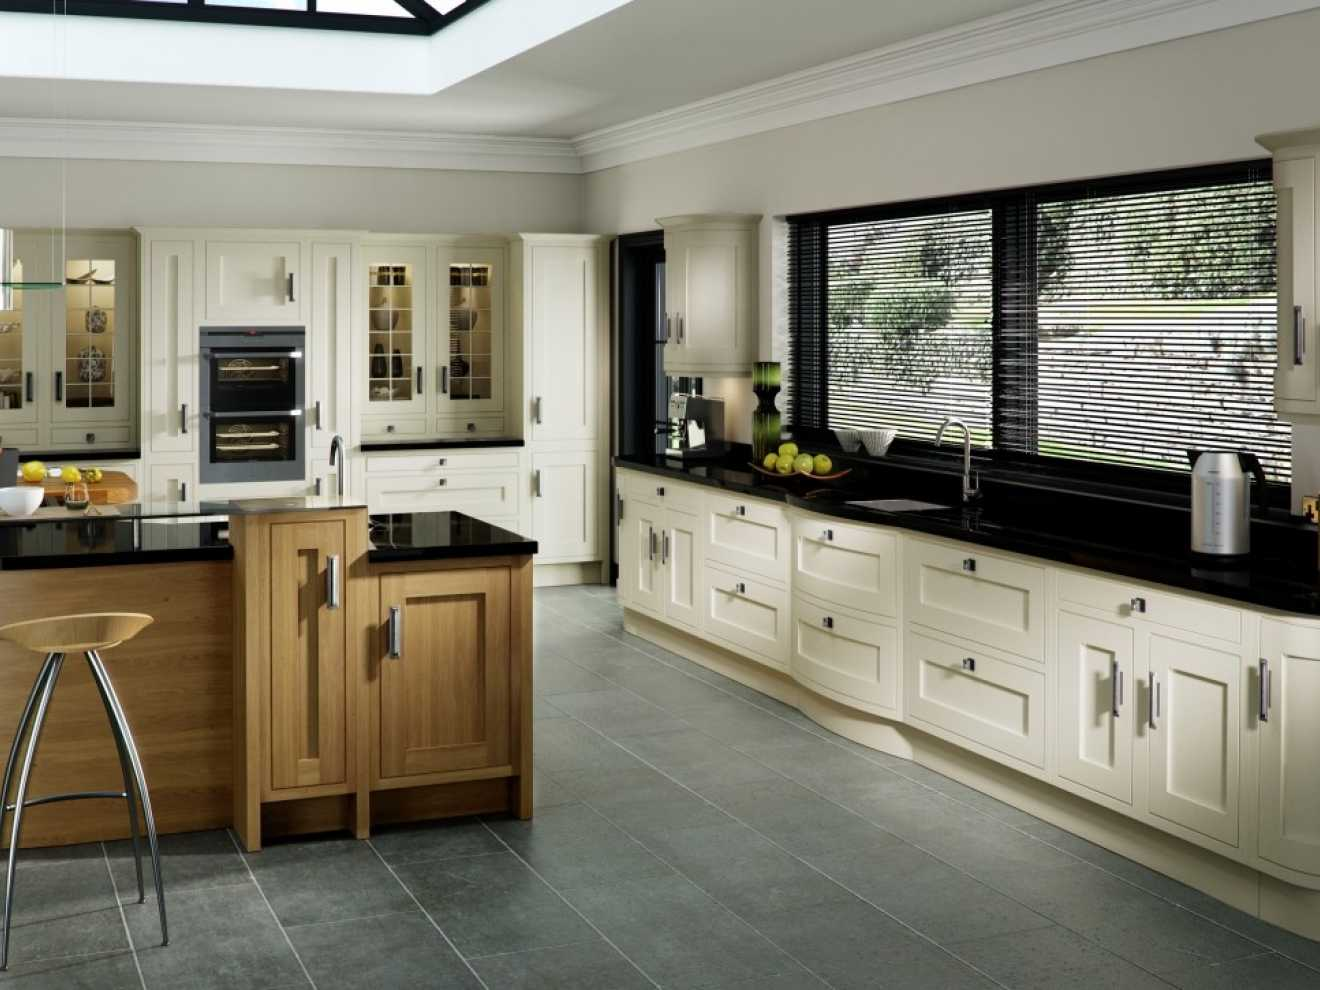 Kitchen cabinet doors northern ireland - Product Gallery